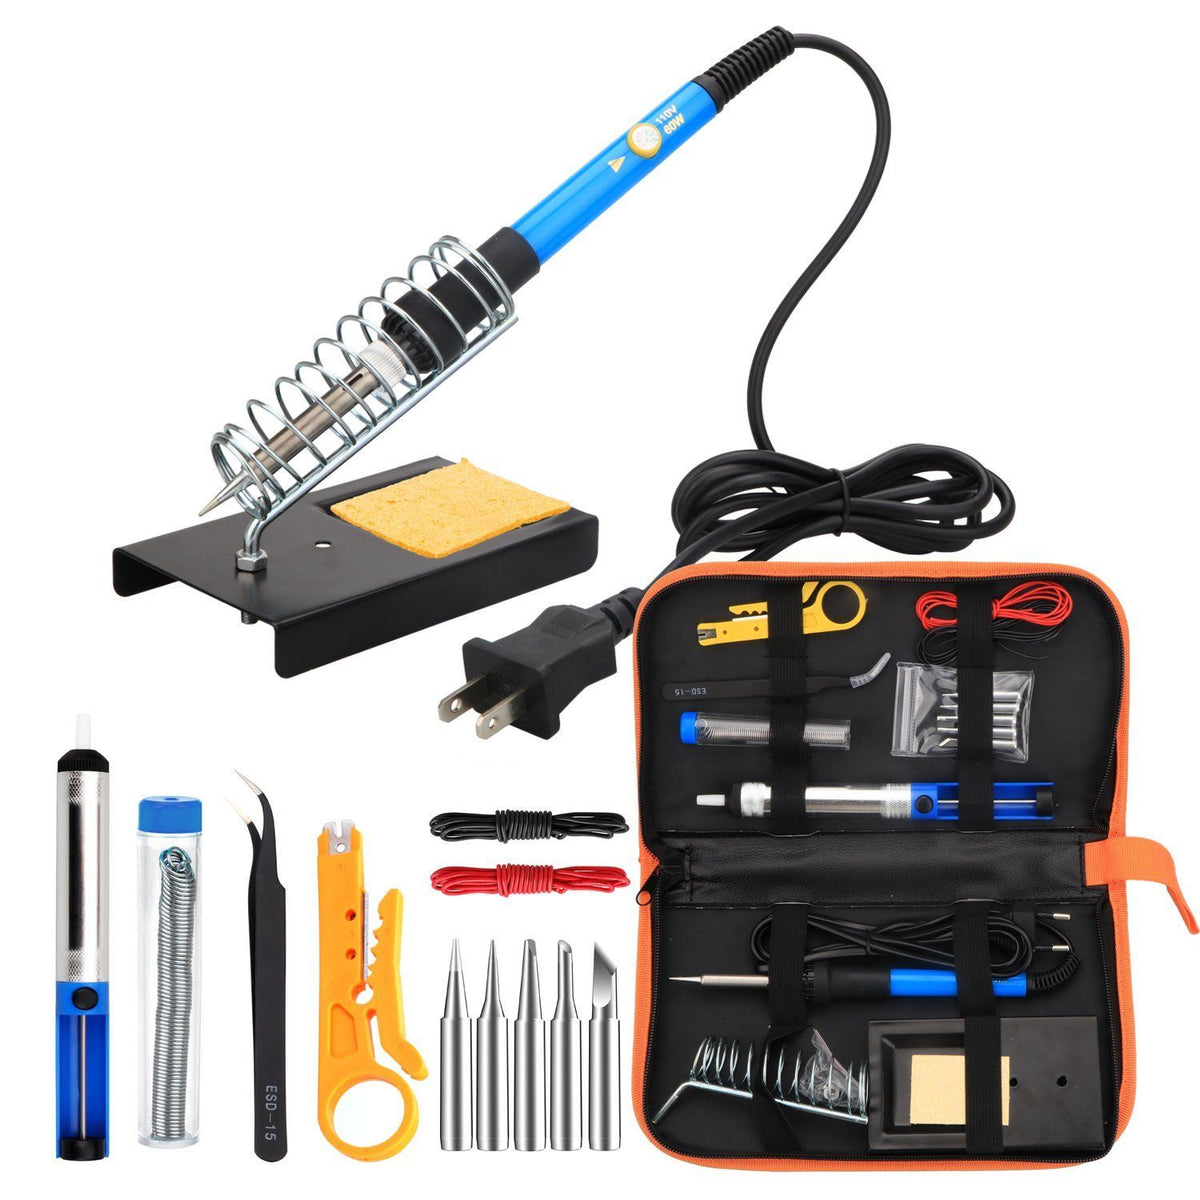 Electronic Instruments And Tools : Electronics soldering iron tool kit v w adjustable